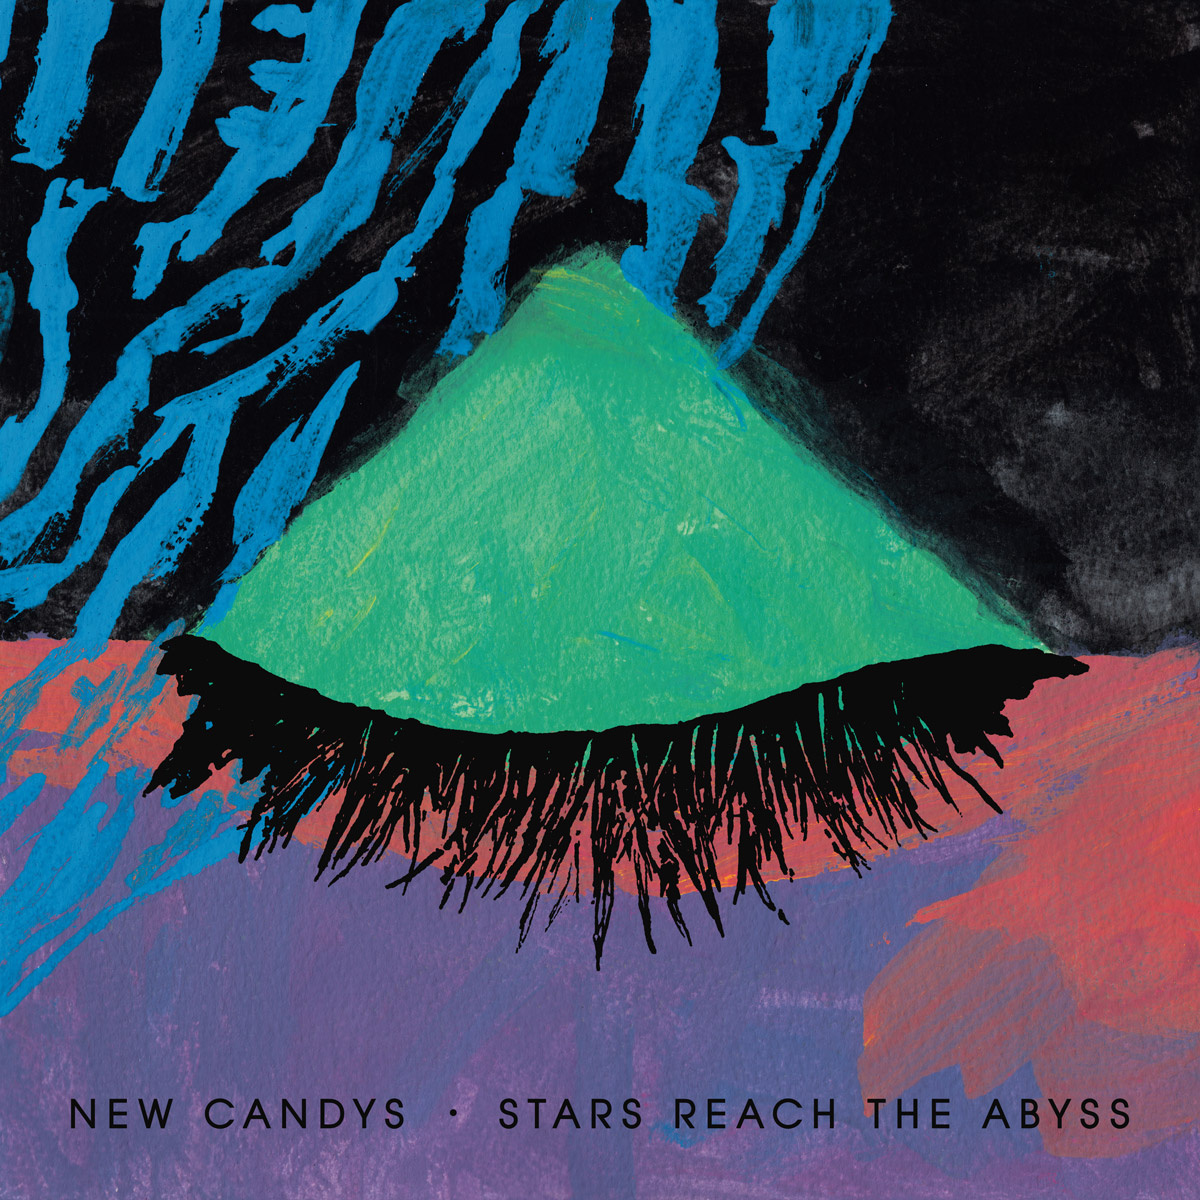 Stars Reach the Abyss